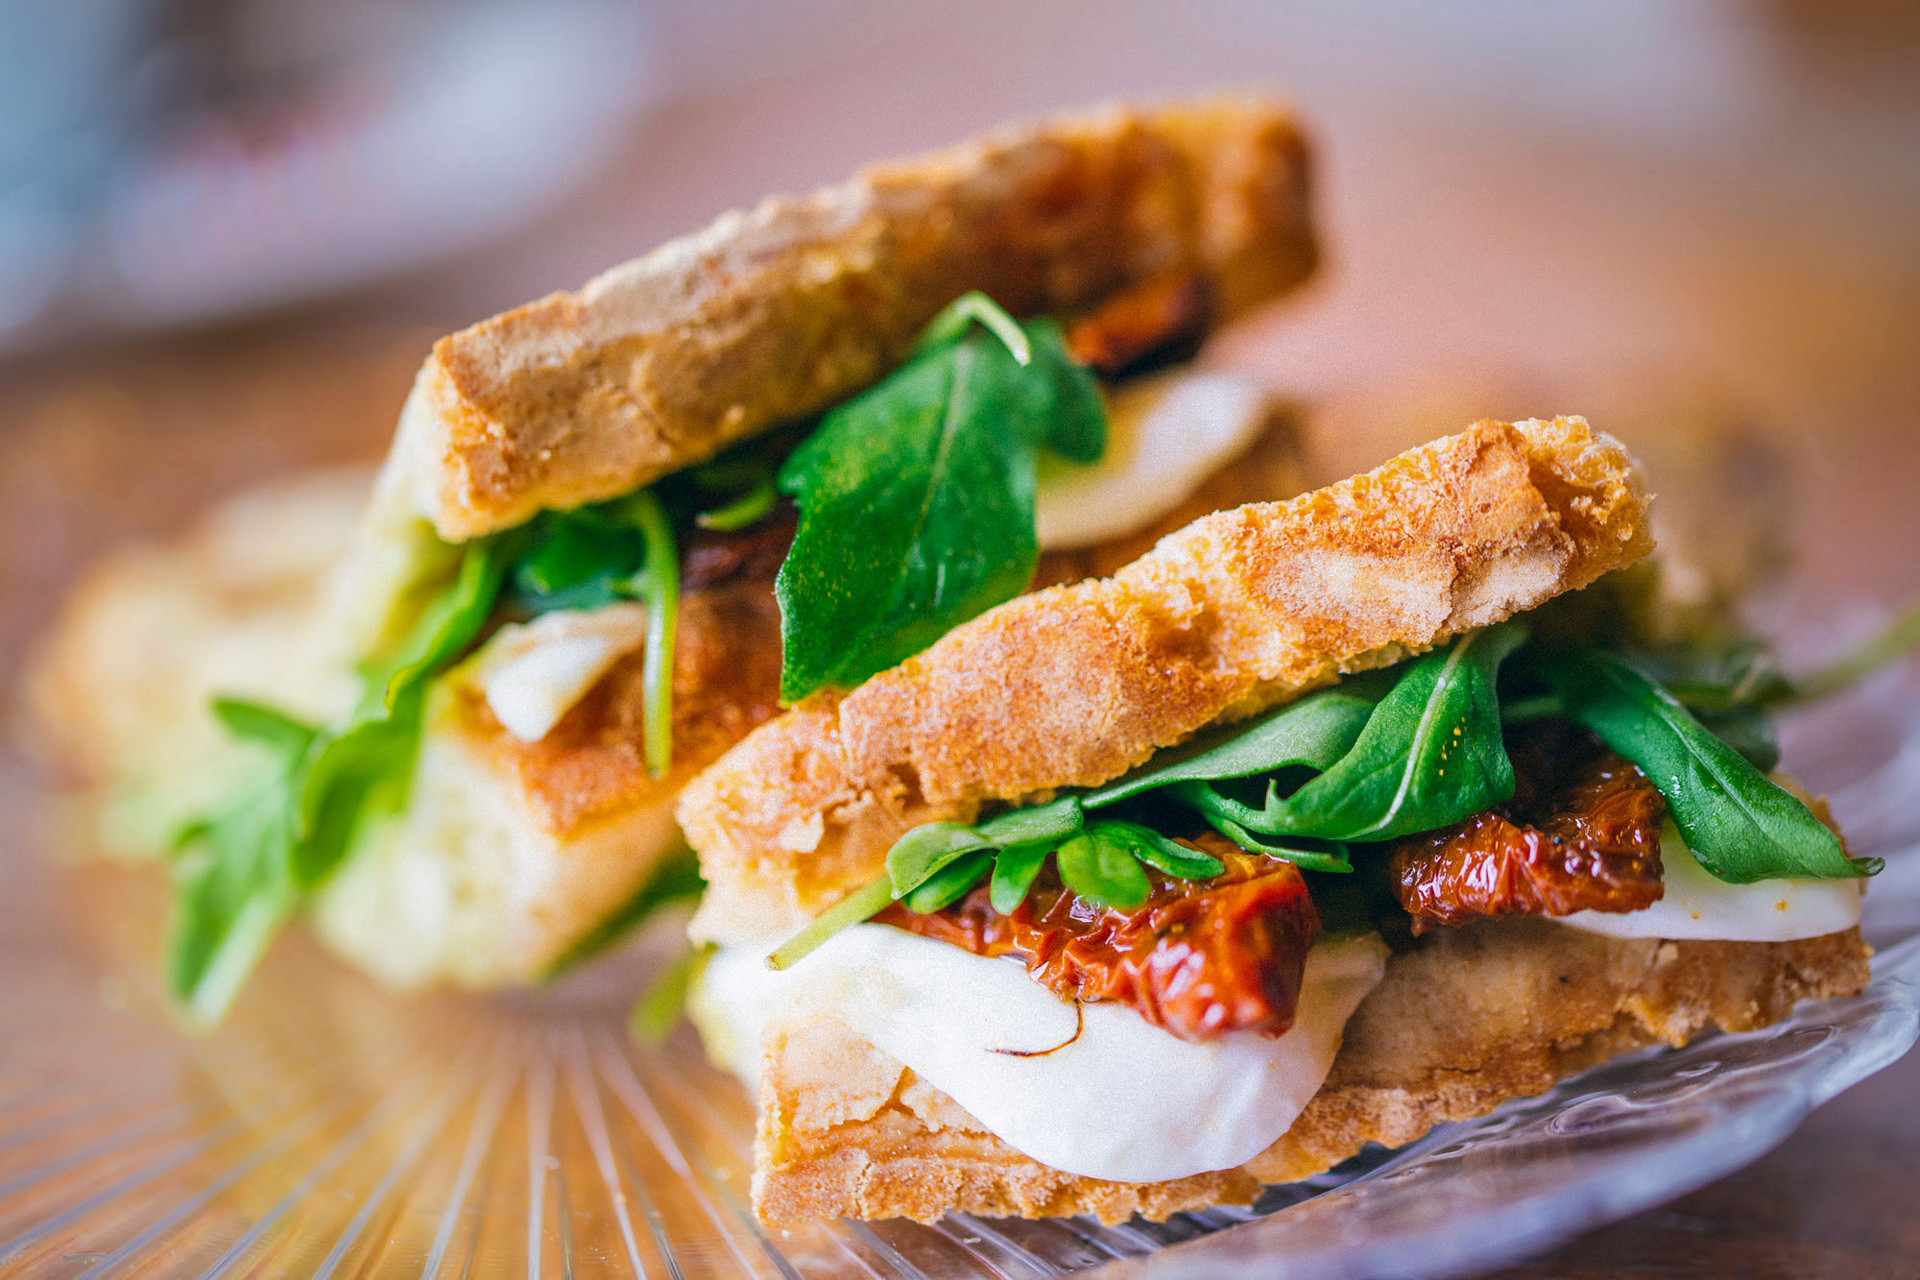 Food-photography-Cafe-Bar-Sandwich.jpg